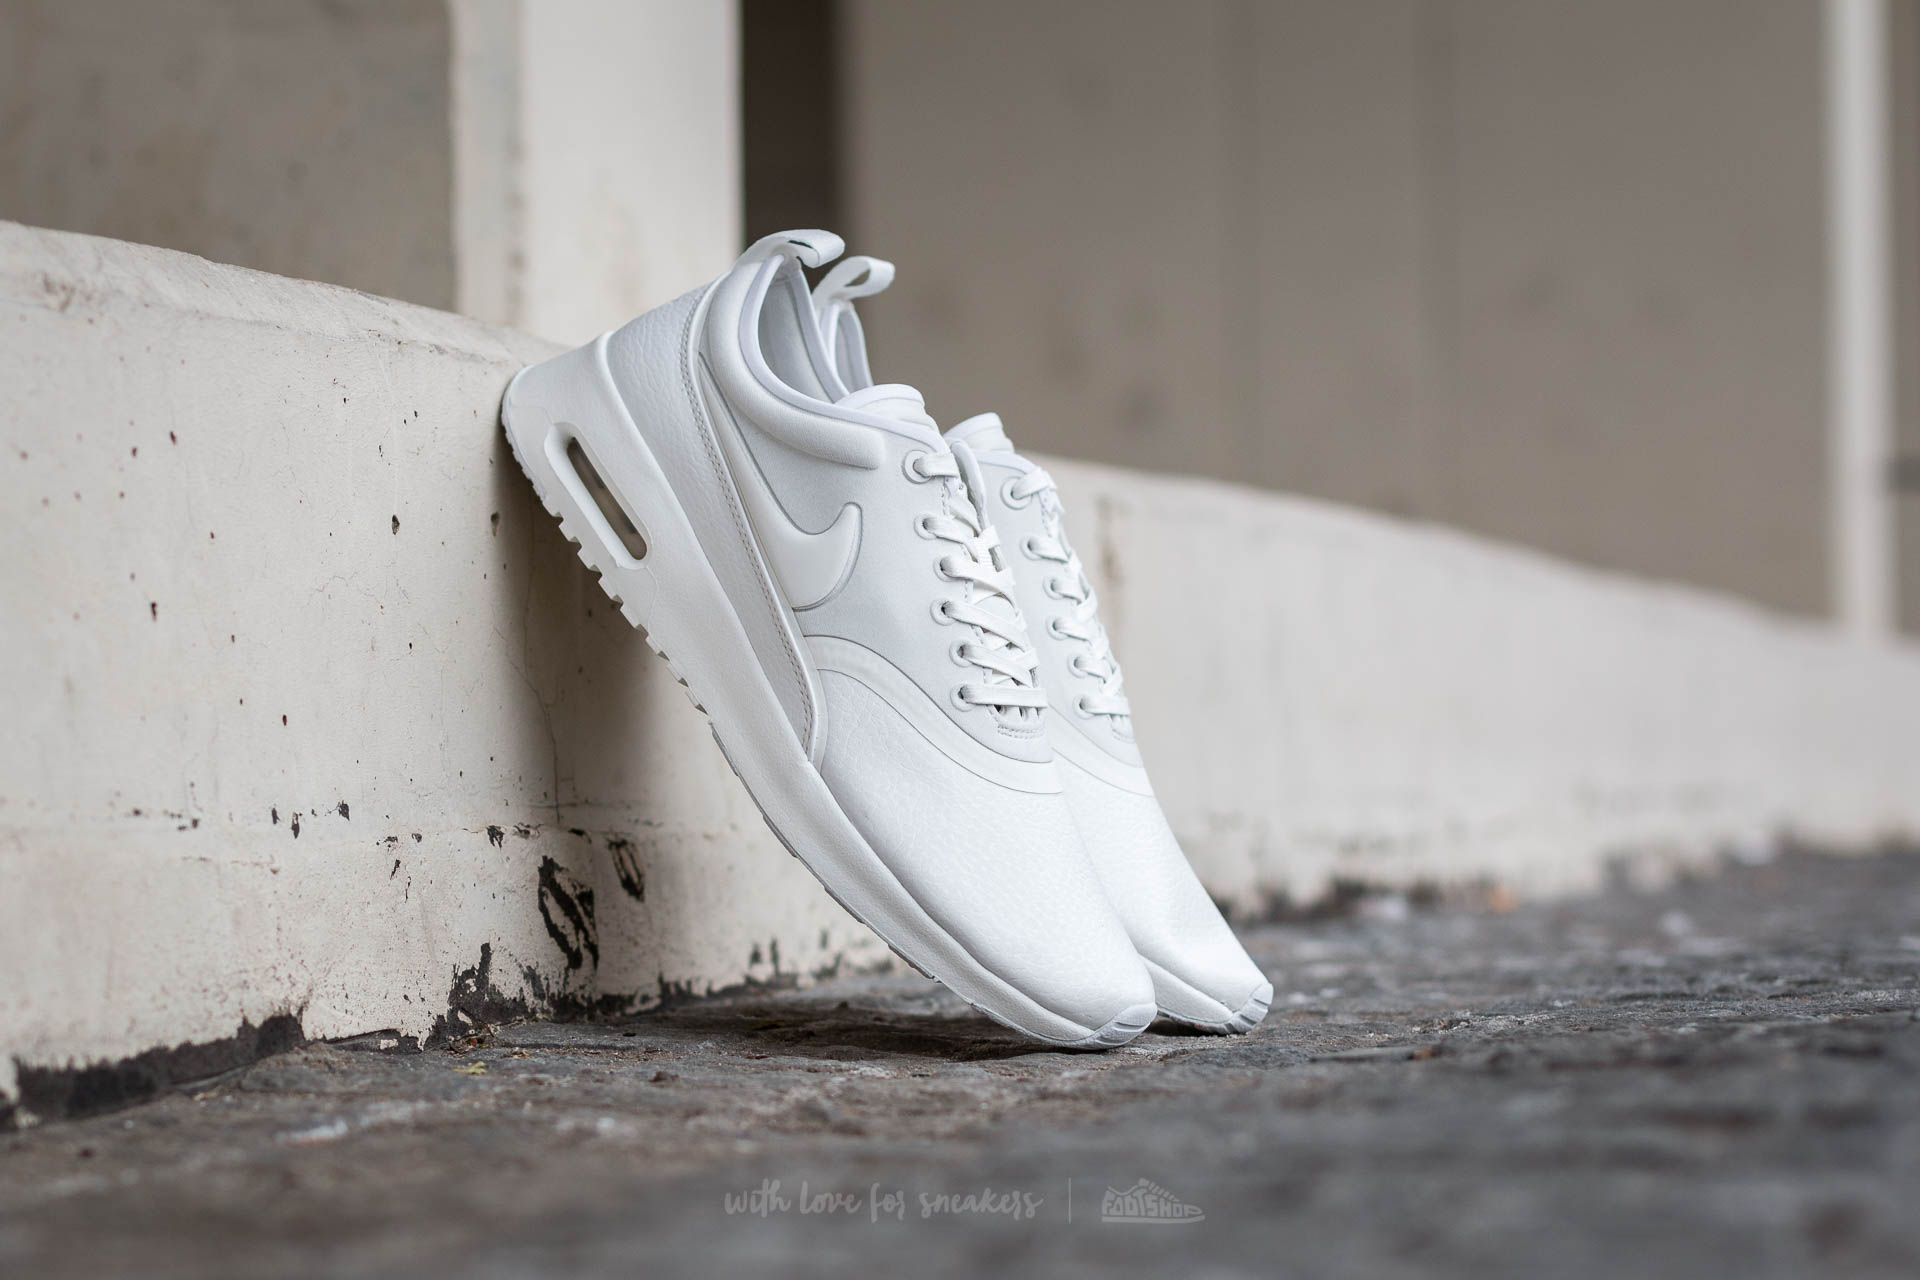 d13a957bdac9 Nike W Air Max Thea Ultra Premium Summit White  Summit White ...